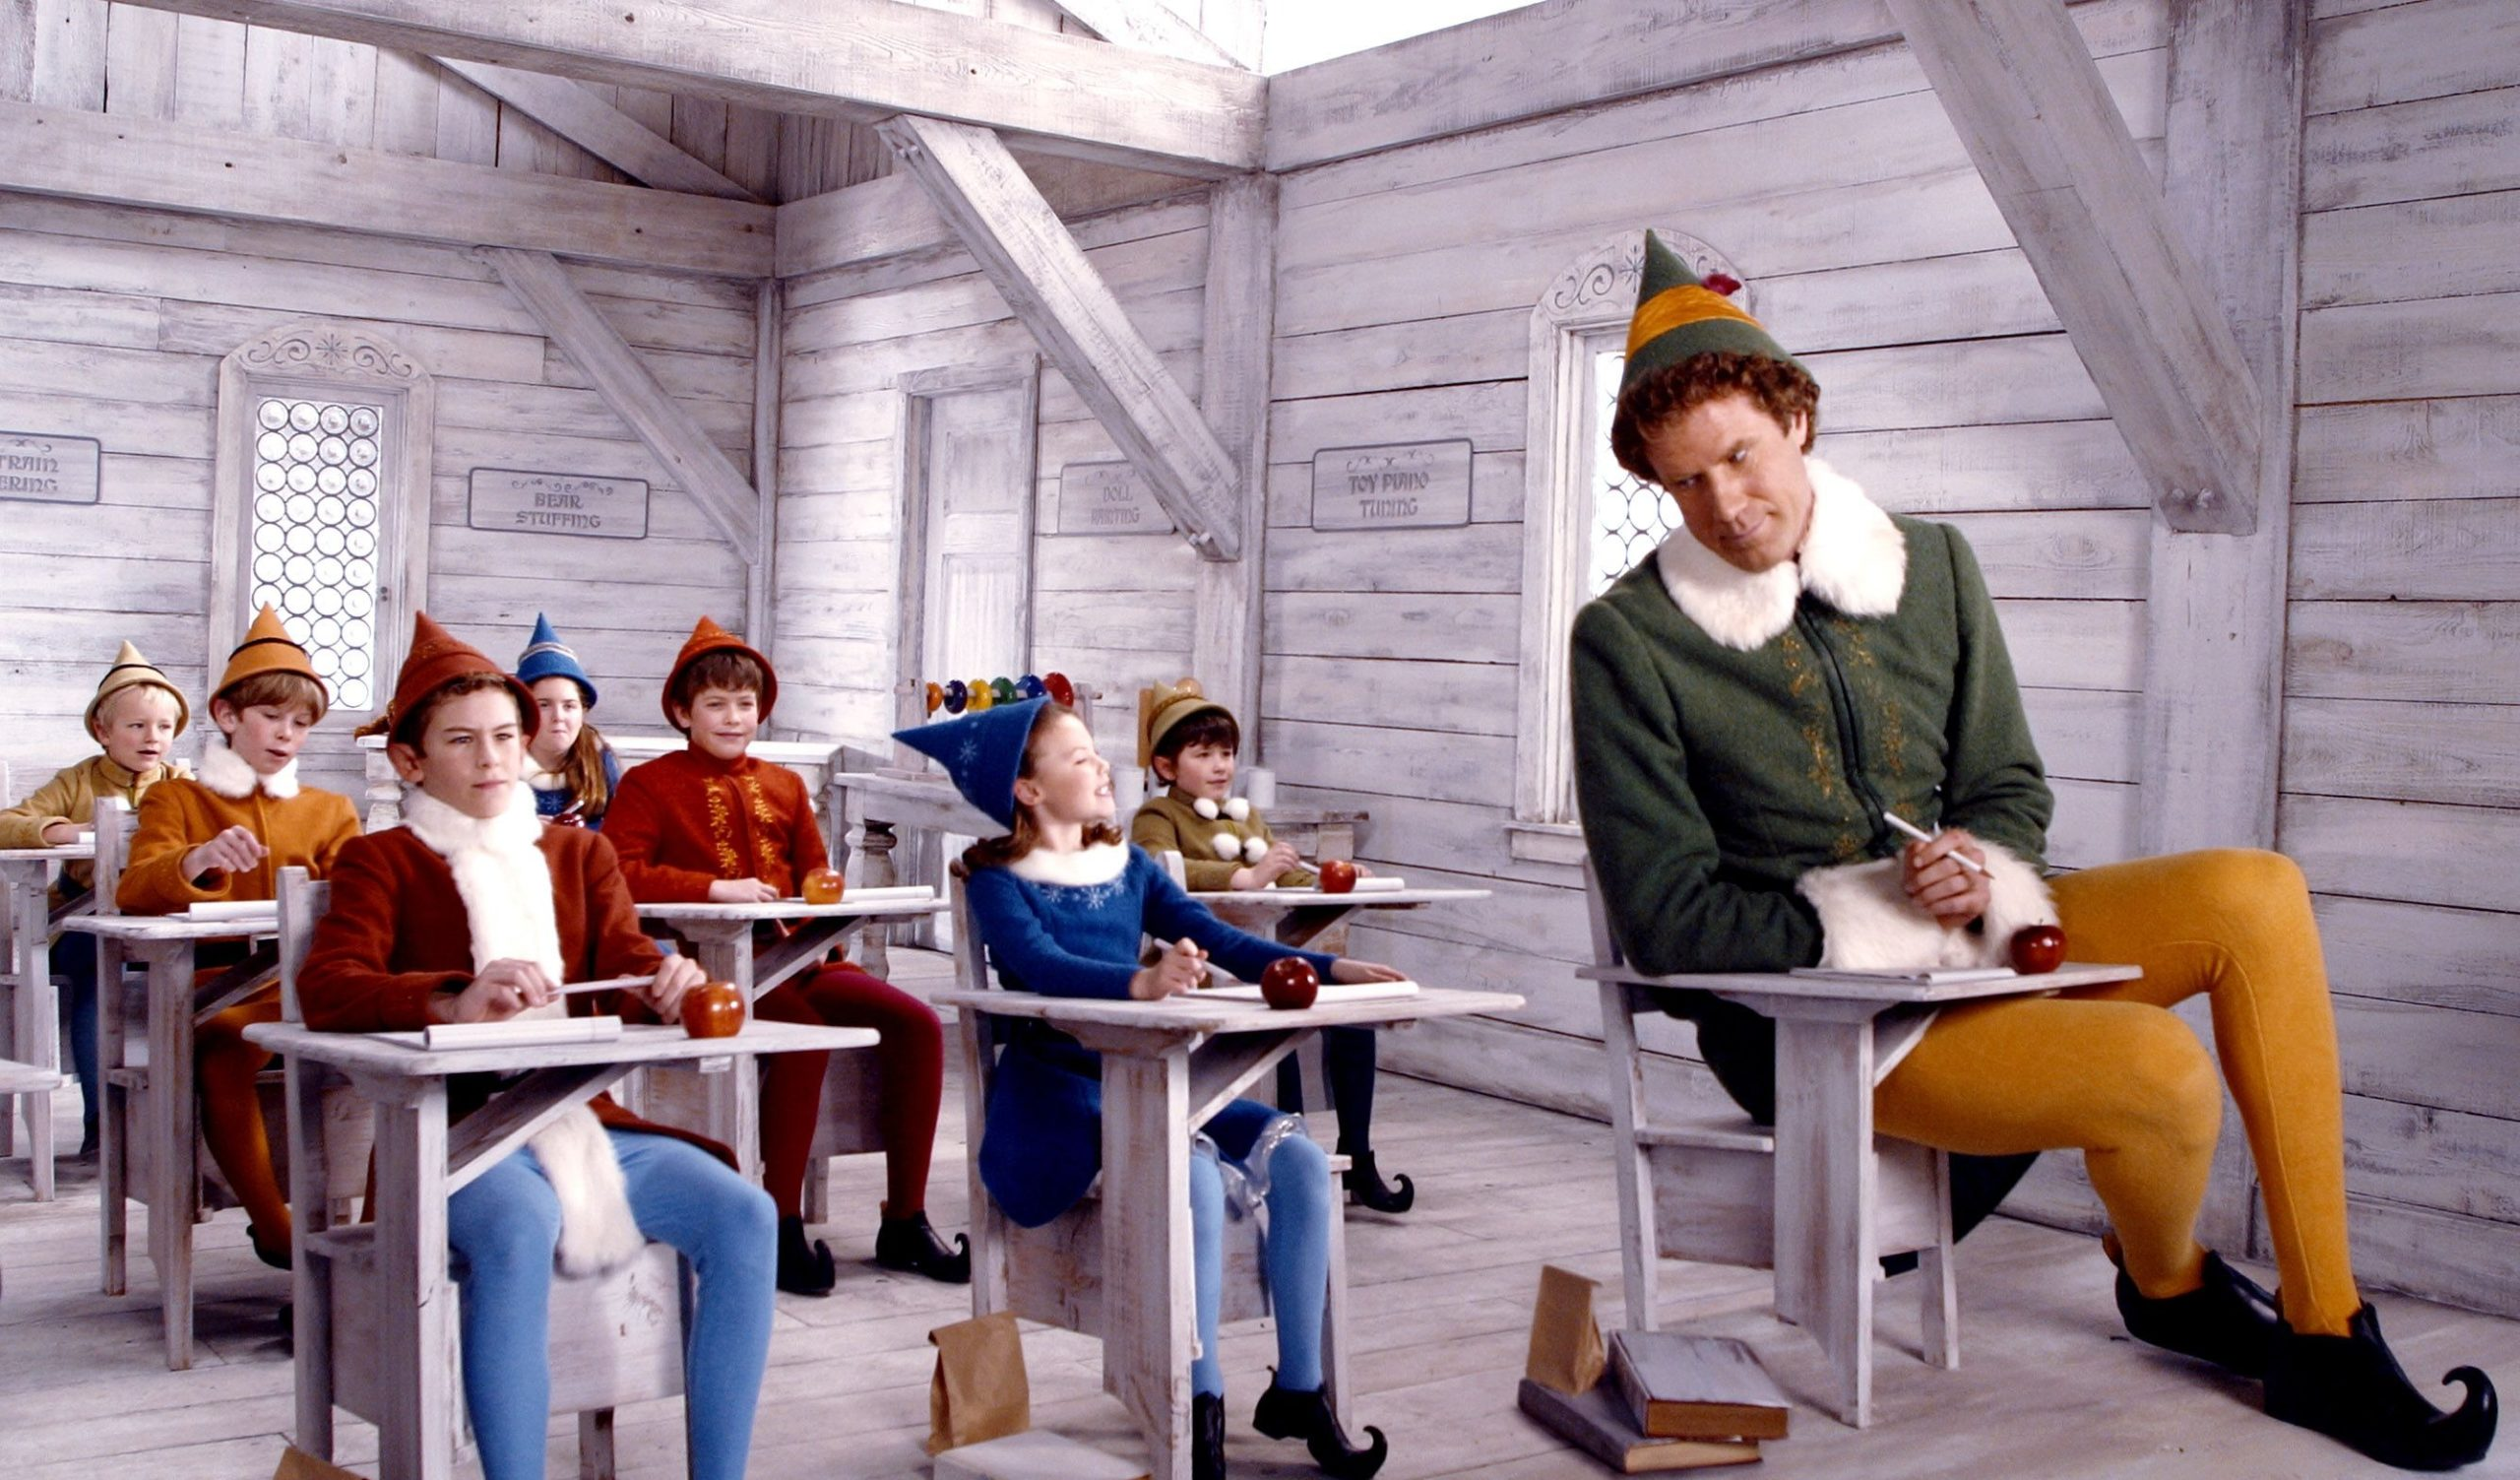 Will Ferrell Buddy the Elf sitting on school desks with other elves